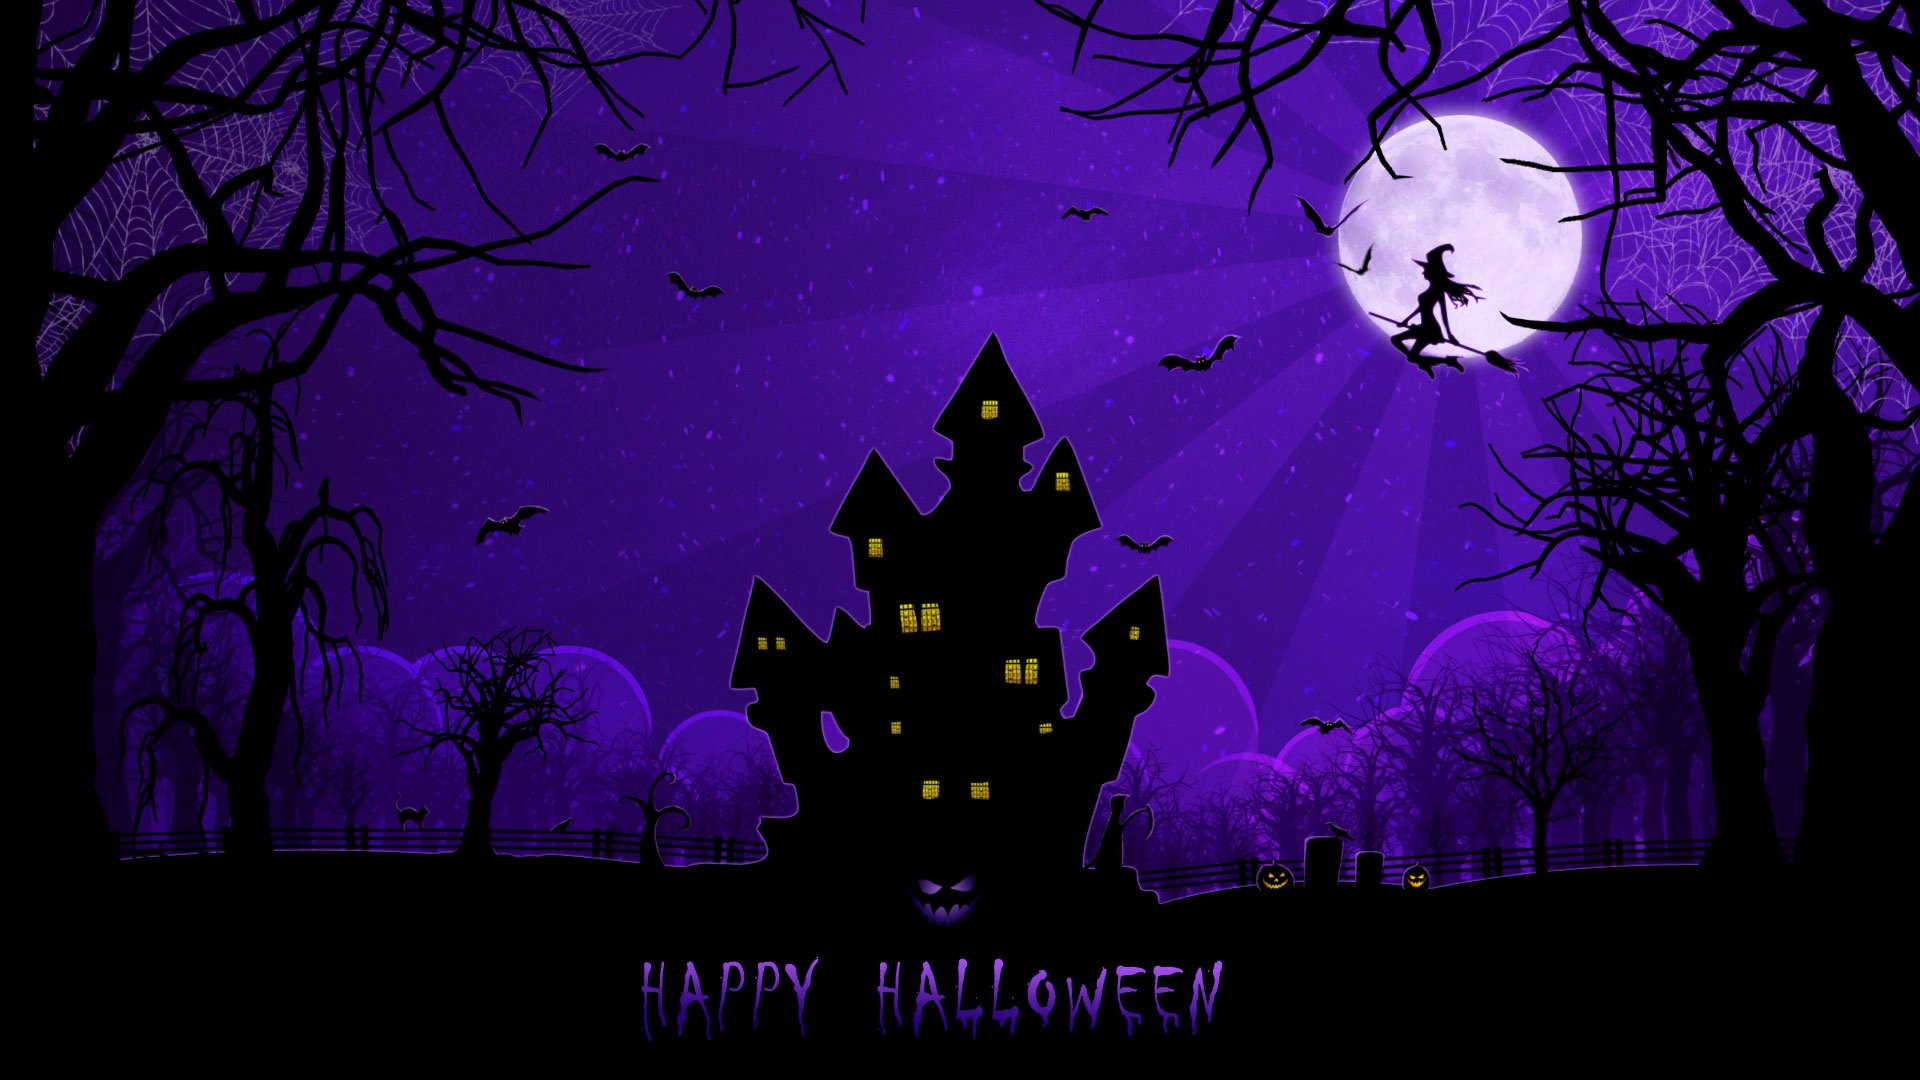 Free Halloween Background Images Best Of Free Halloween Backgrounds for Desktop